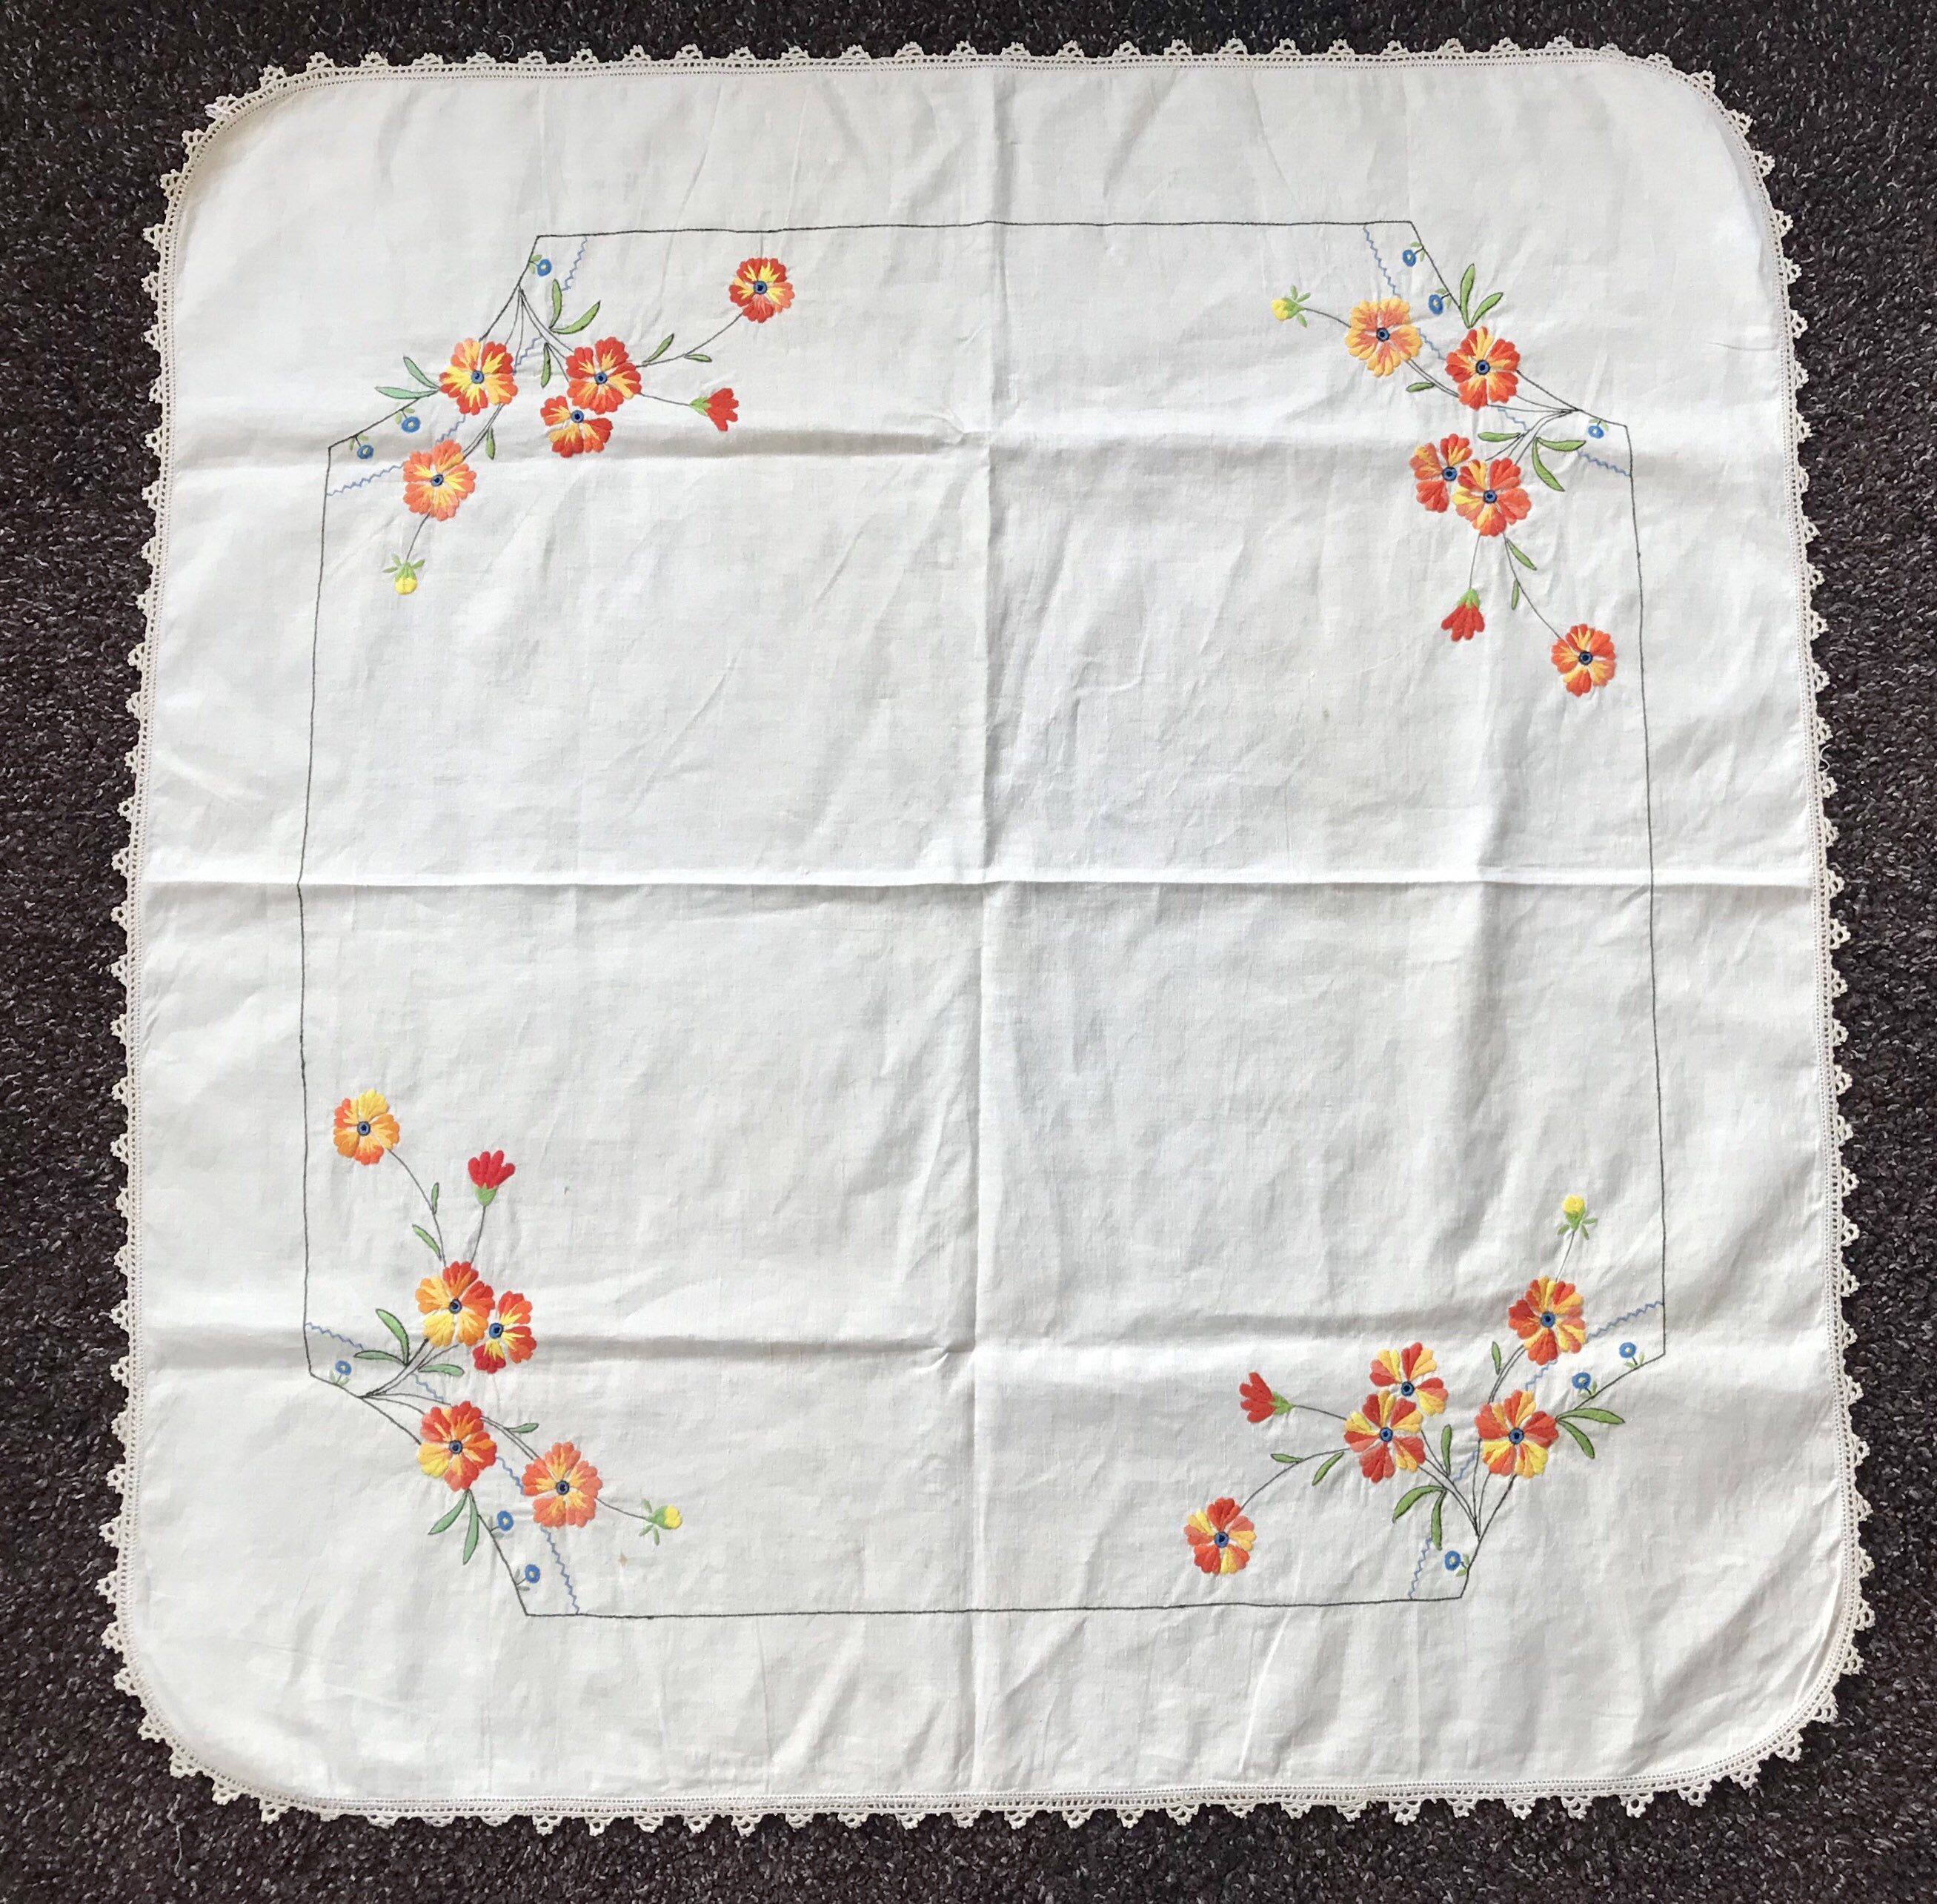 Antique Folk Art Tablecloth Decorated With Embroidered Etsy Vintage Linens Antique Folk Art Antique Linens